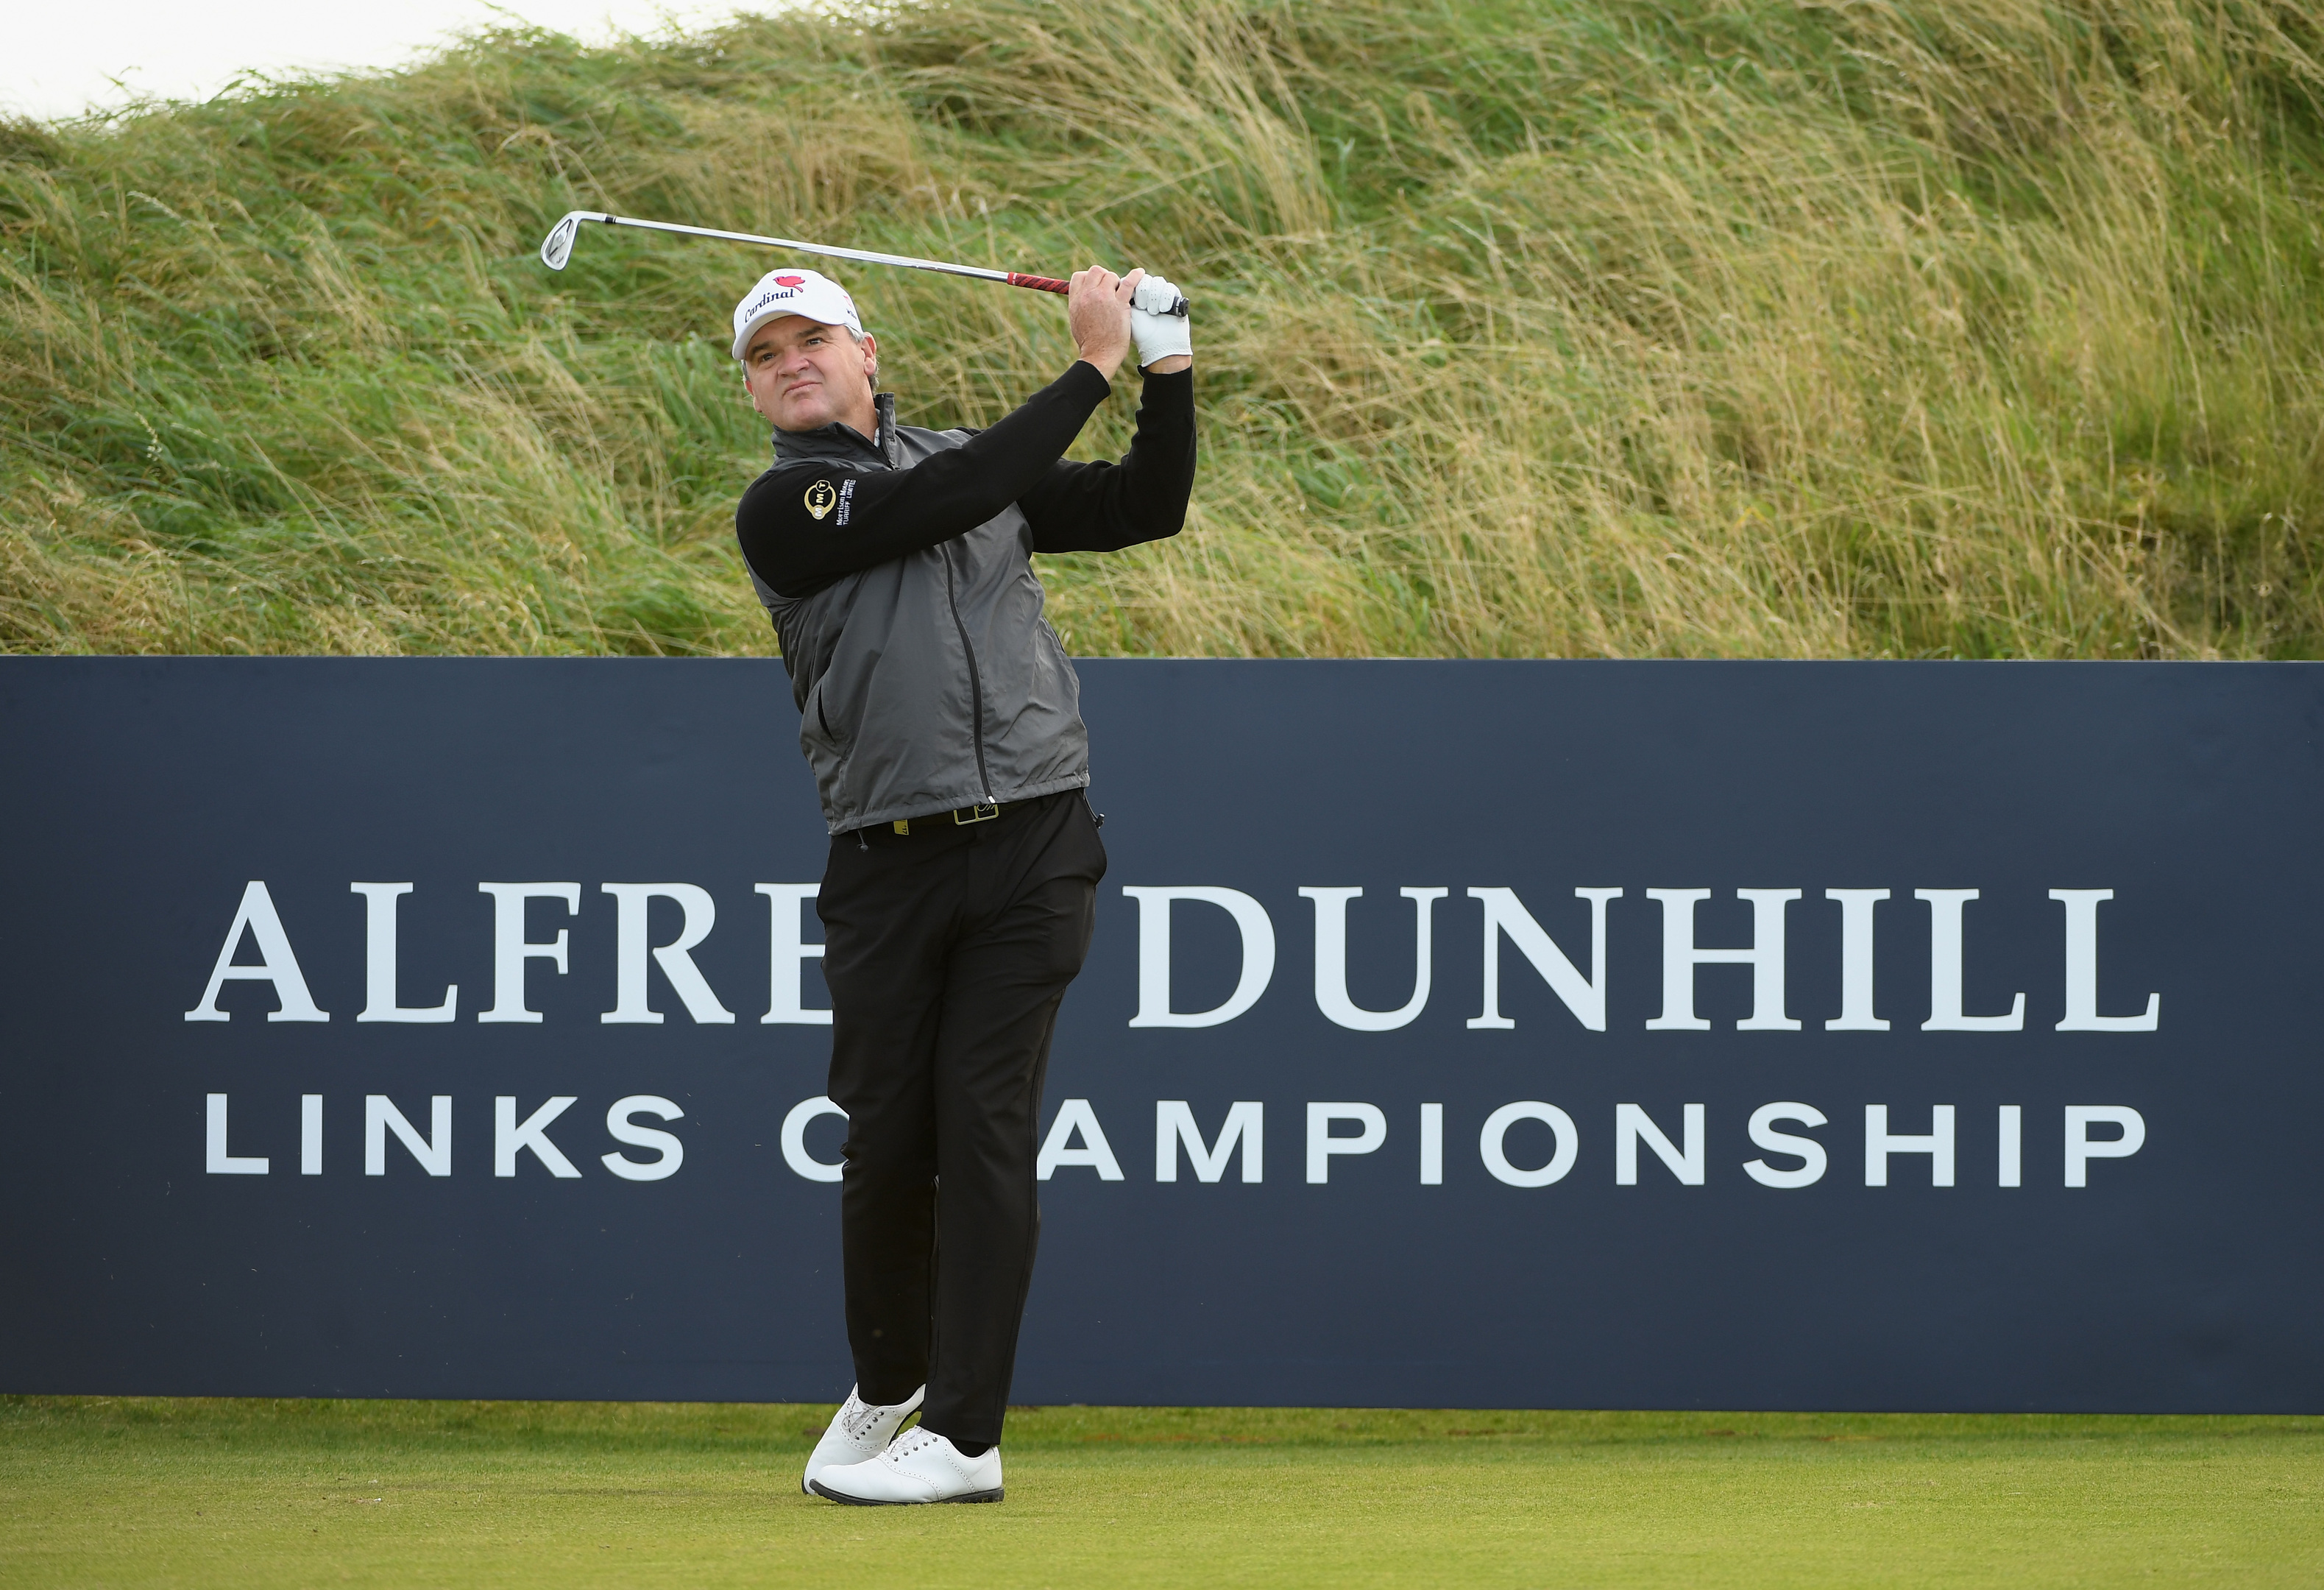 Paul Lawrie in practice at Kingsbarns prior to the 2017 Alfred Dunhill Links Championships.